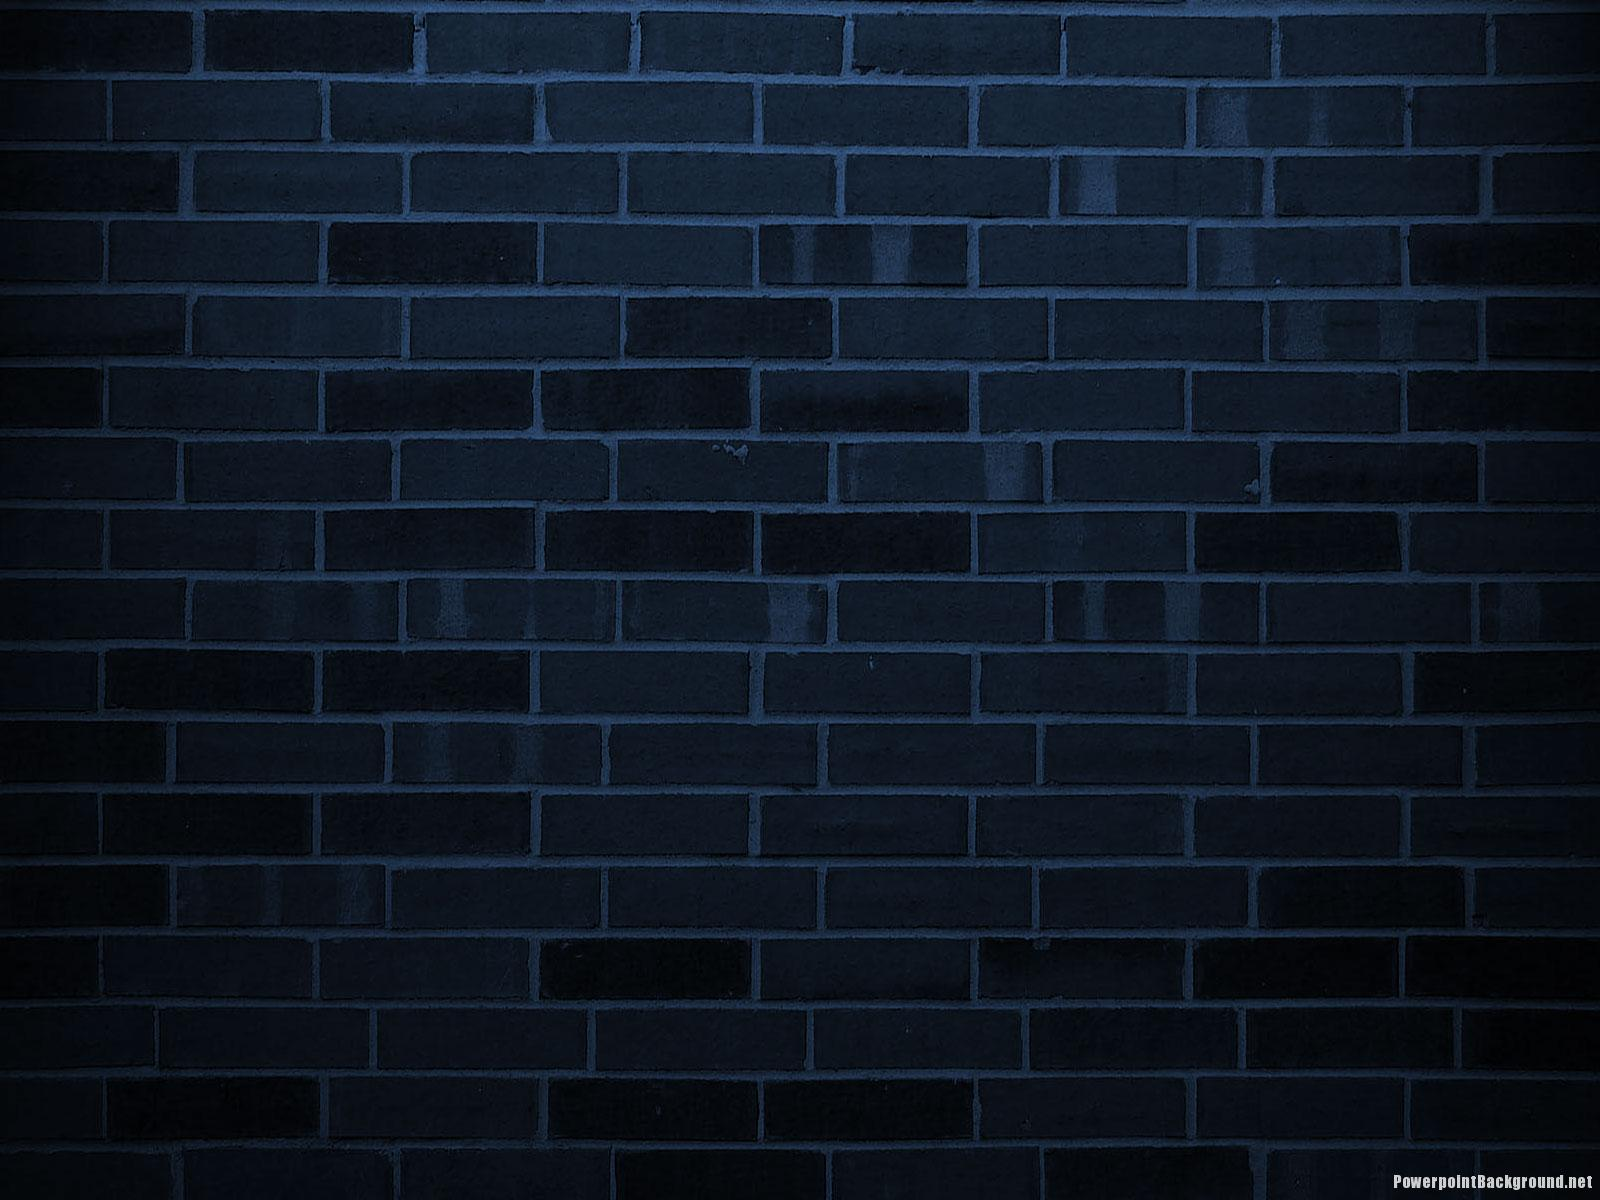 Dark powerpoint background robertottni dark brick wall background powerpoint background toneelgroepblik Image collections